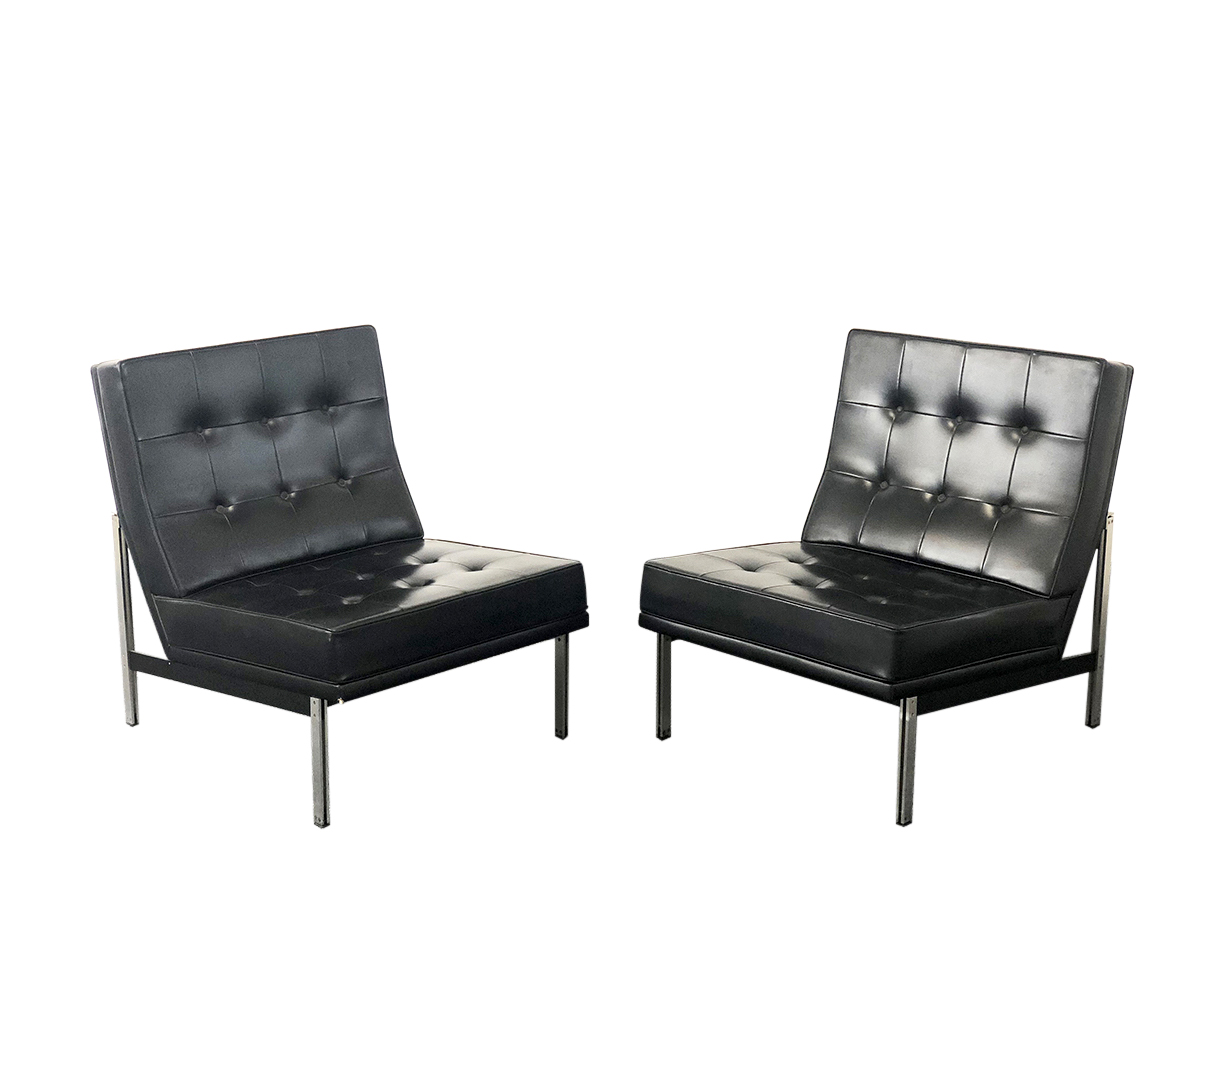 Poltrone Knoll Prezzi.Florence Knoll Armchairs From 1960